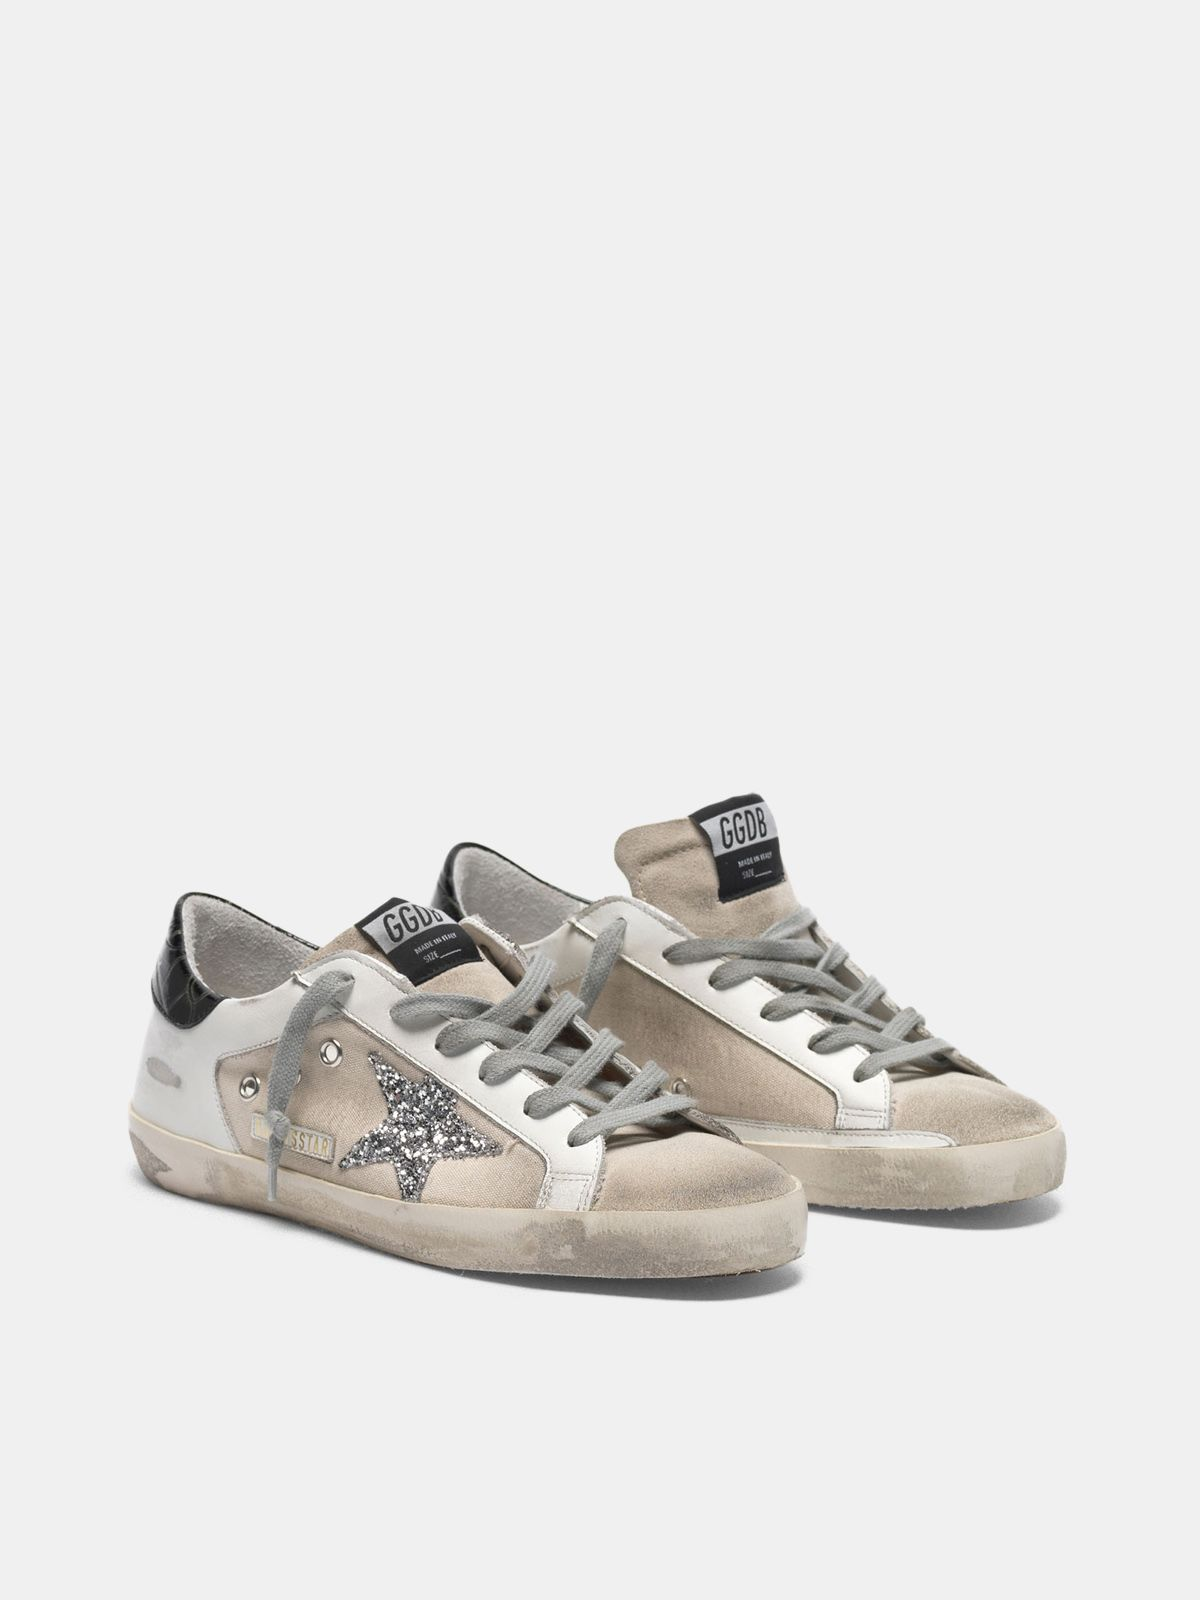 Golden Goose - Canvas Super-Star sneakers in leather with glittery star in